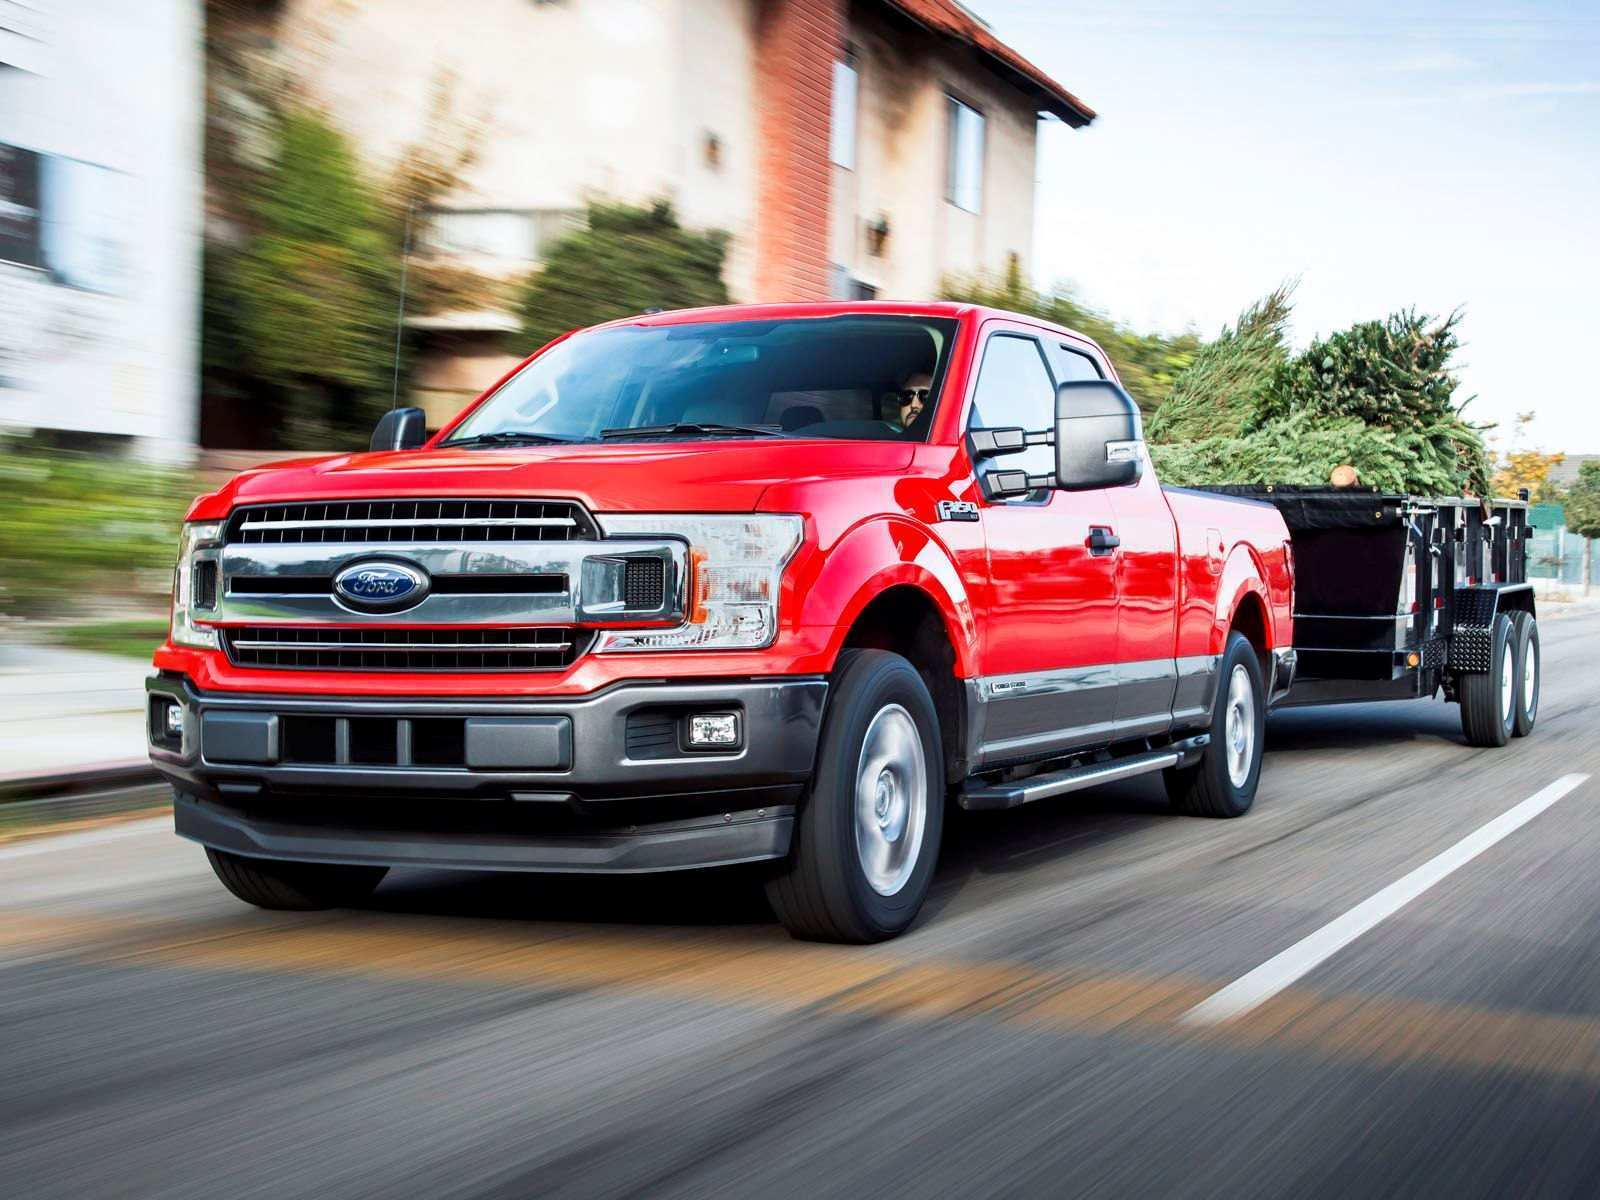 21 Gallery of 2019 Ford Pickup Truck Concept for 2019 Ford Pickup Truck